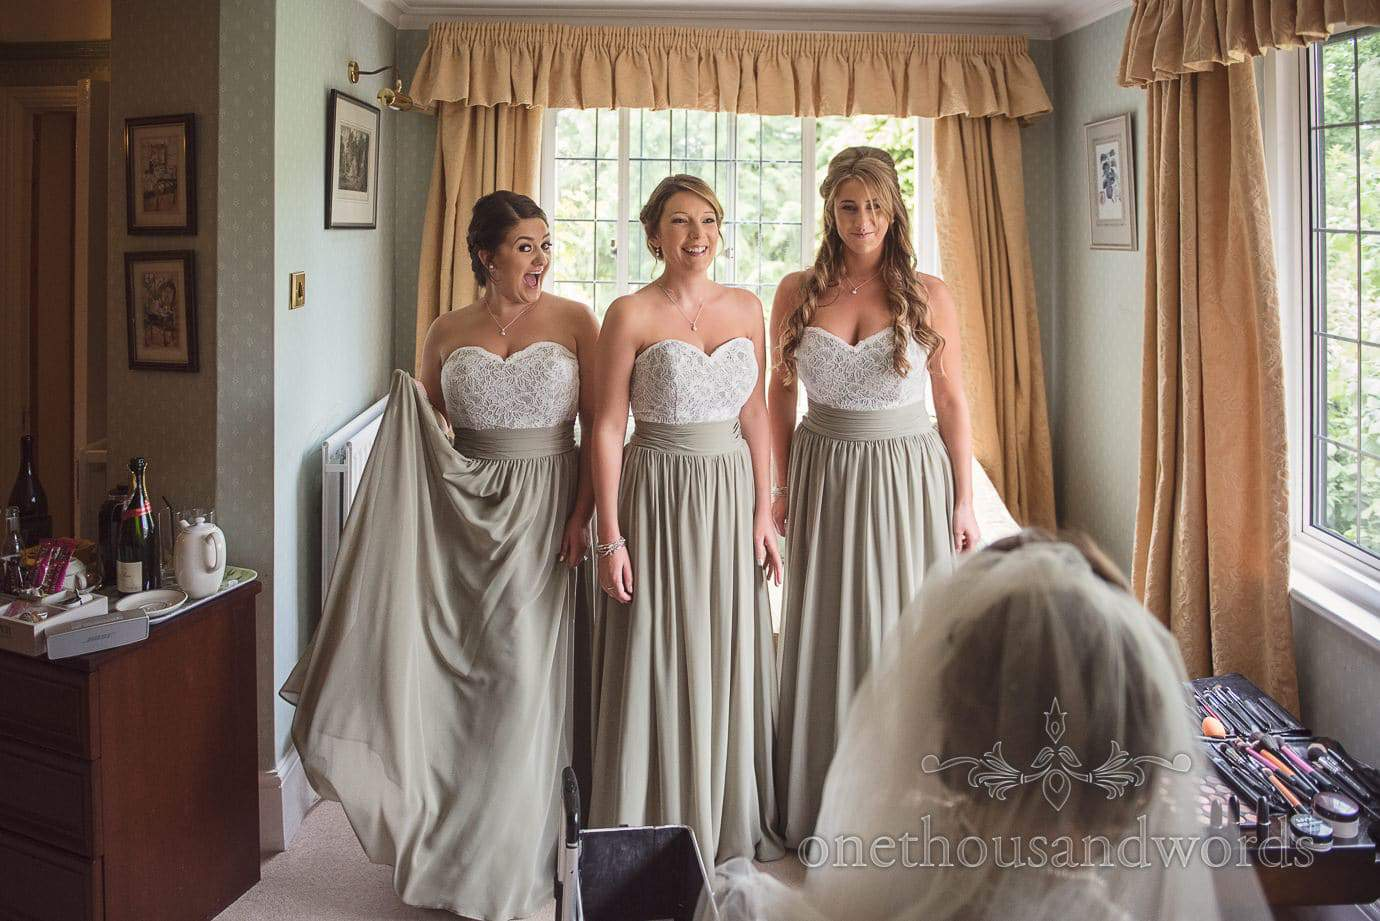 Beautiful bridesmaids in dusty green bridesmaids dresses with white lace detailing